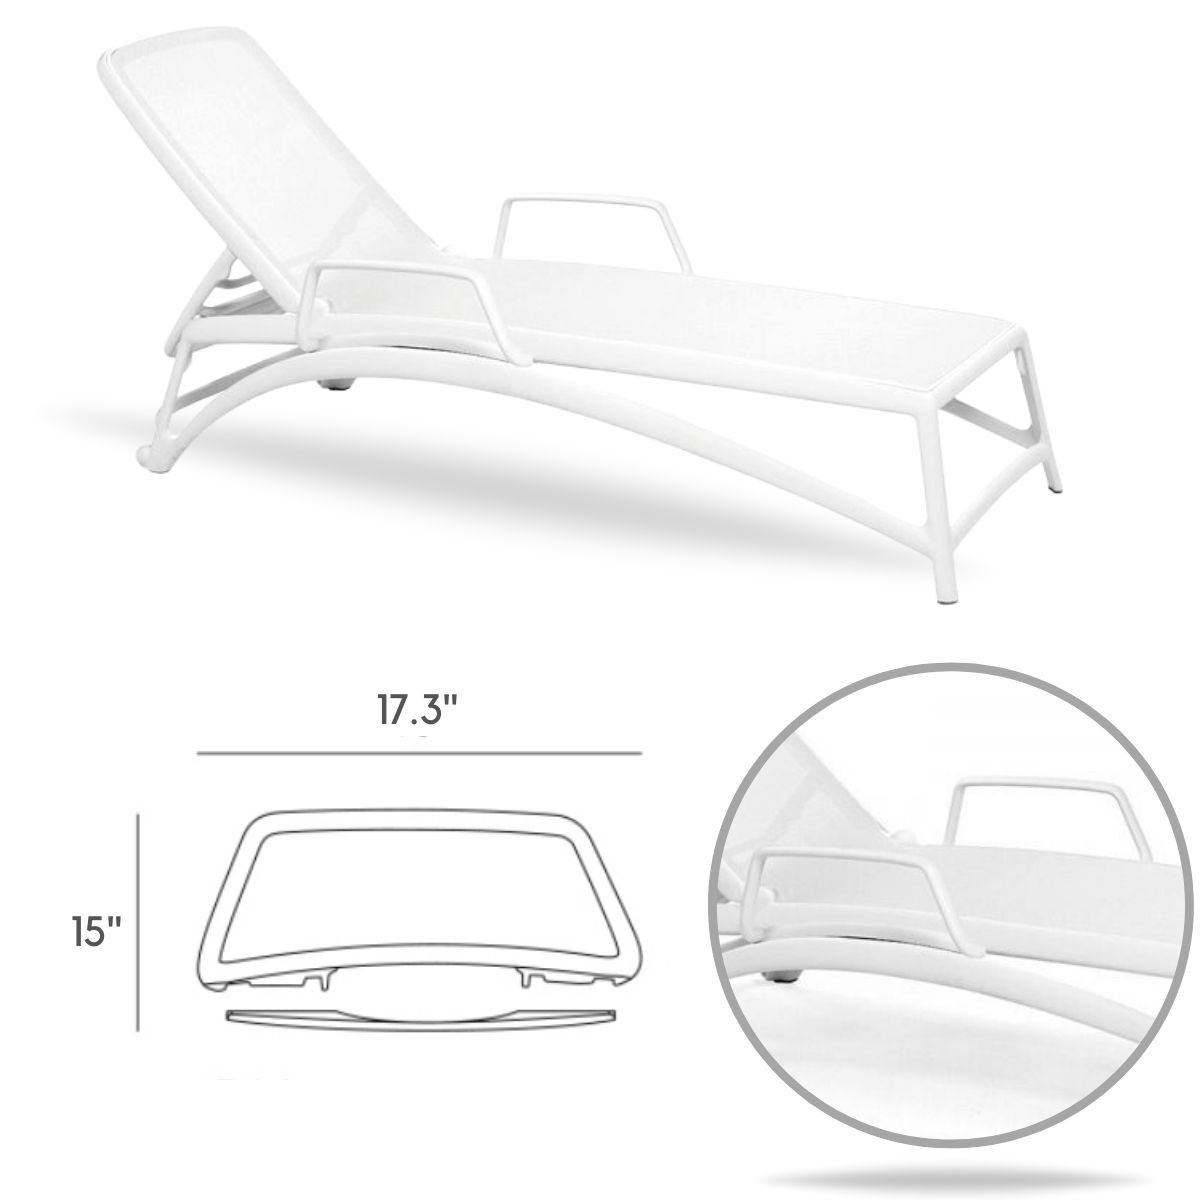 sunloungr-arms-kit white